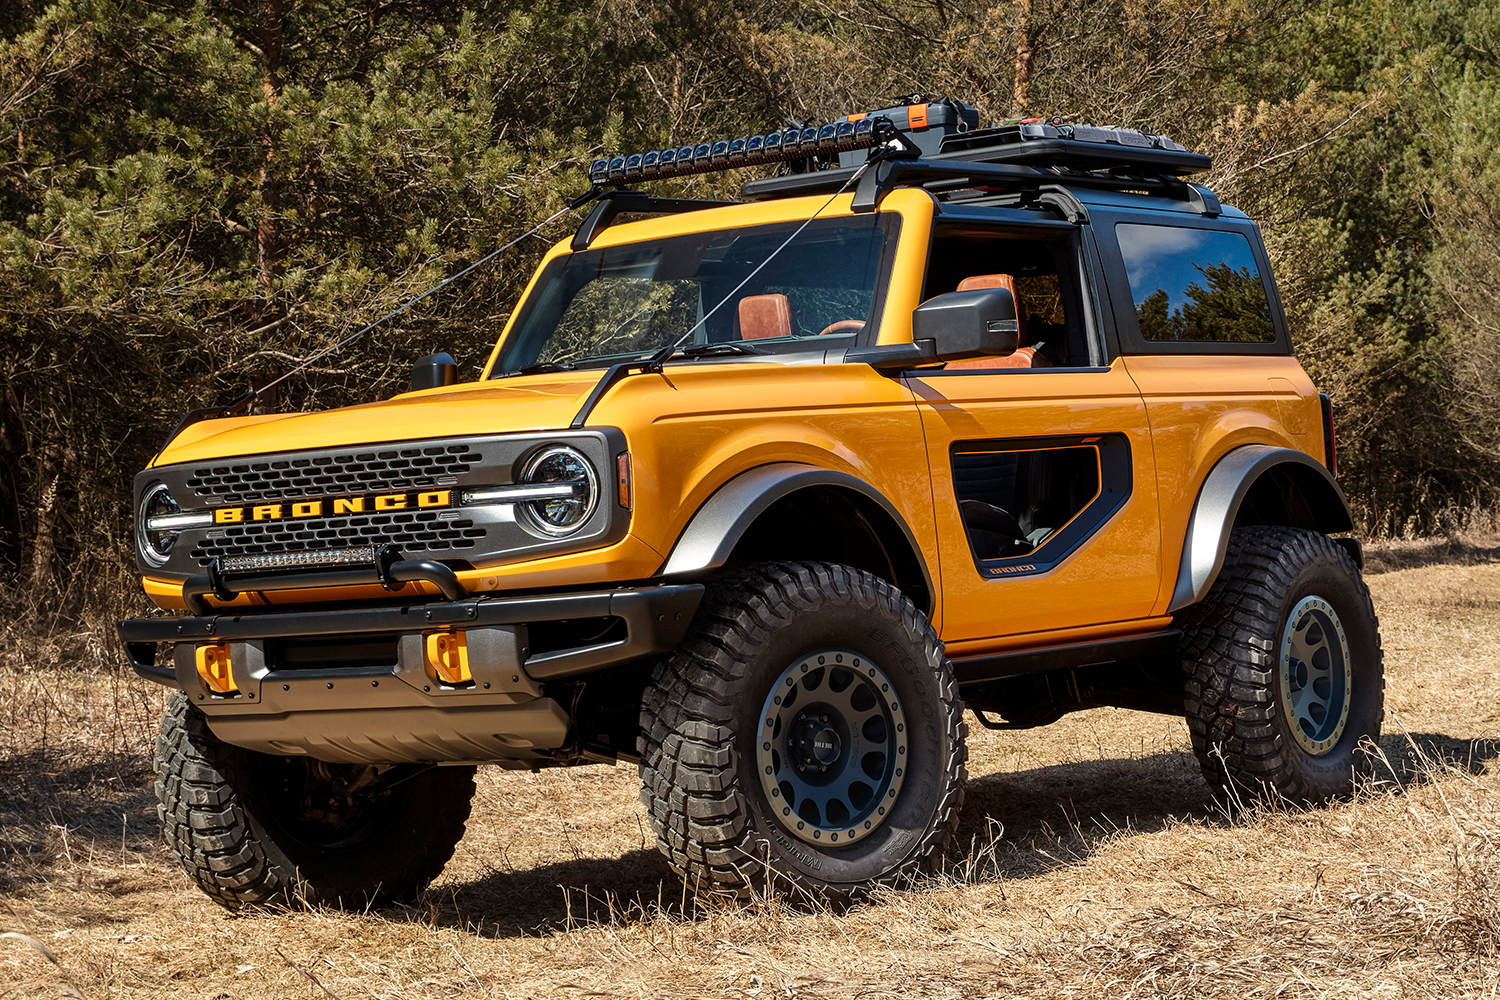 A new Ford Bronco SUV with two doors, featuring cutouts, and a Cyber Orange paint job, sitting still in dry grass with a wooded area in the background